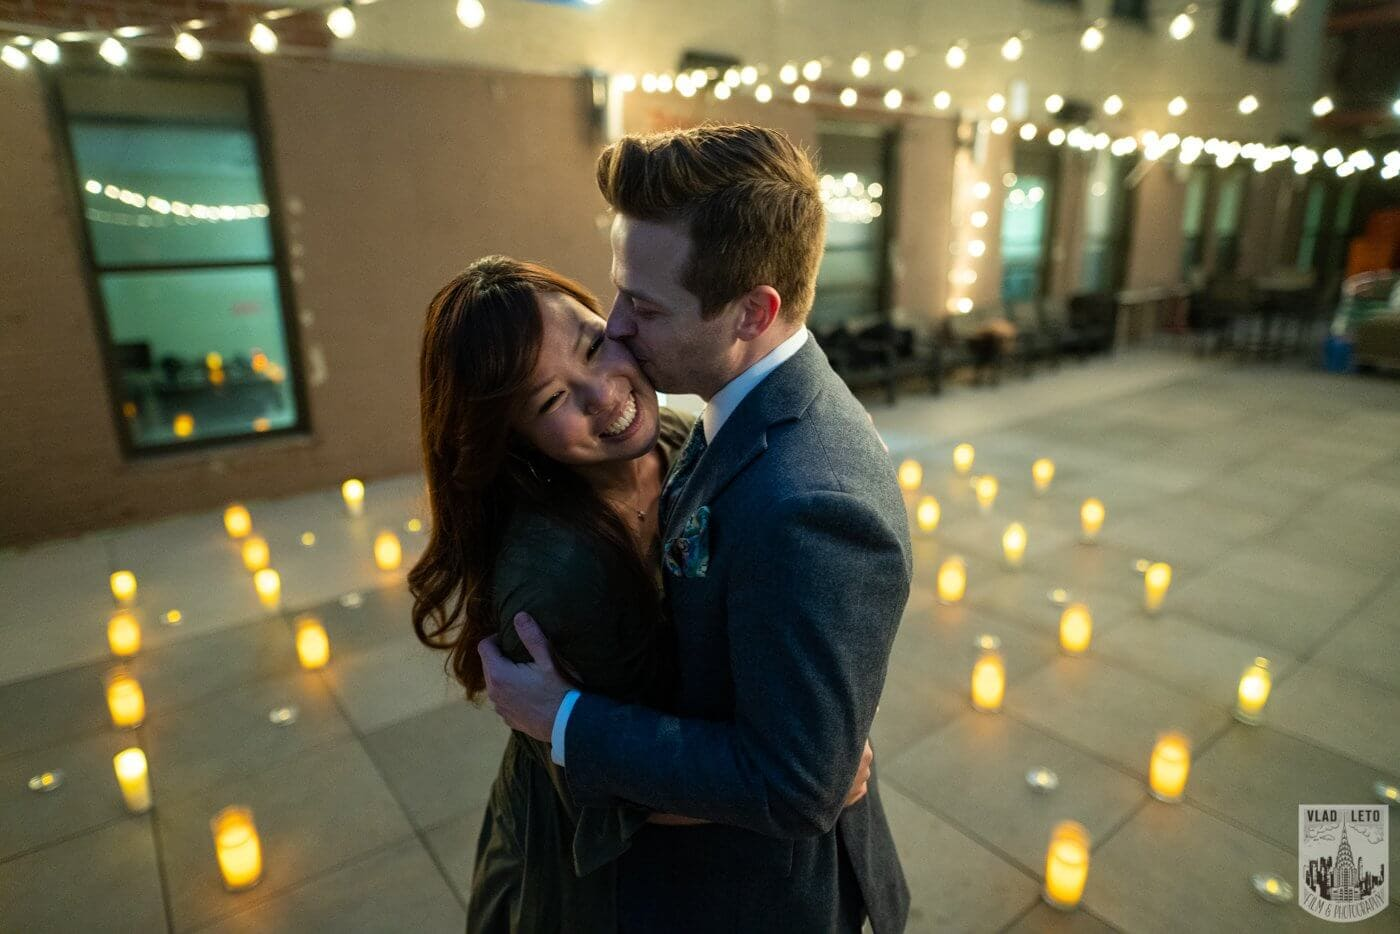 Photo 4 Wedding proposal on a private rooftop with Empire State building view.   VladLeto